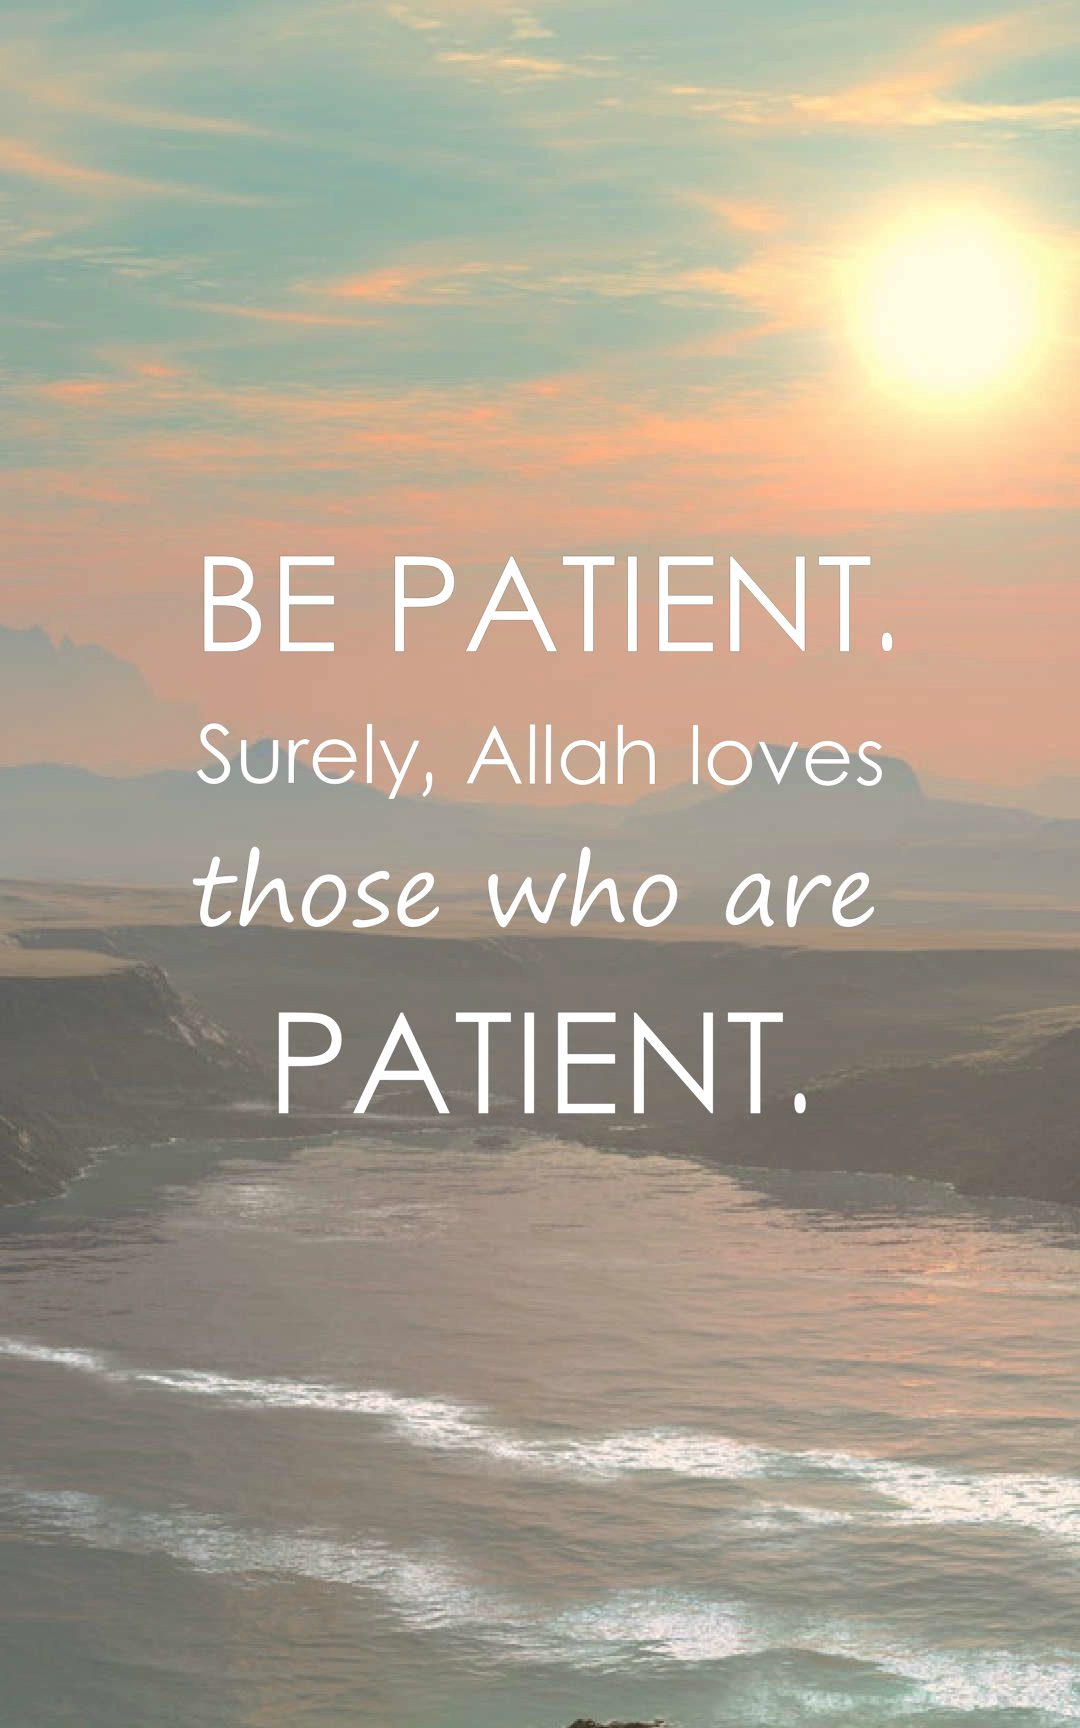 Be patient. Surely, Allah loves those who are patient.